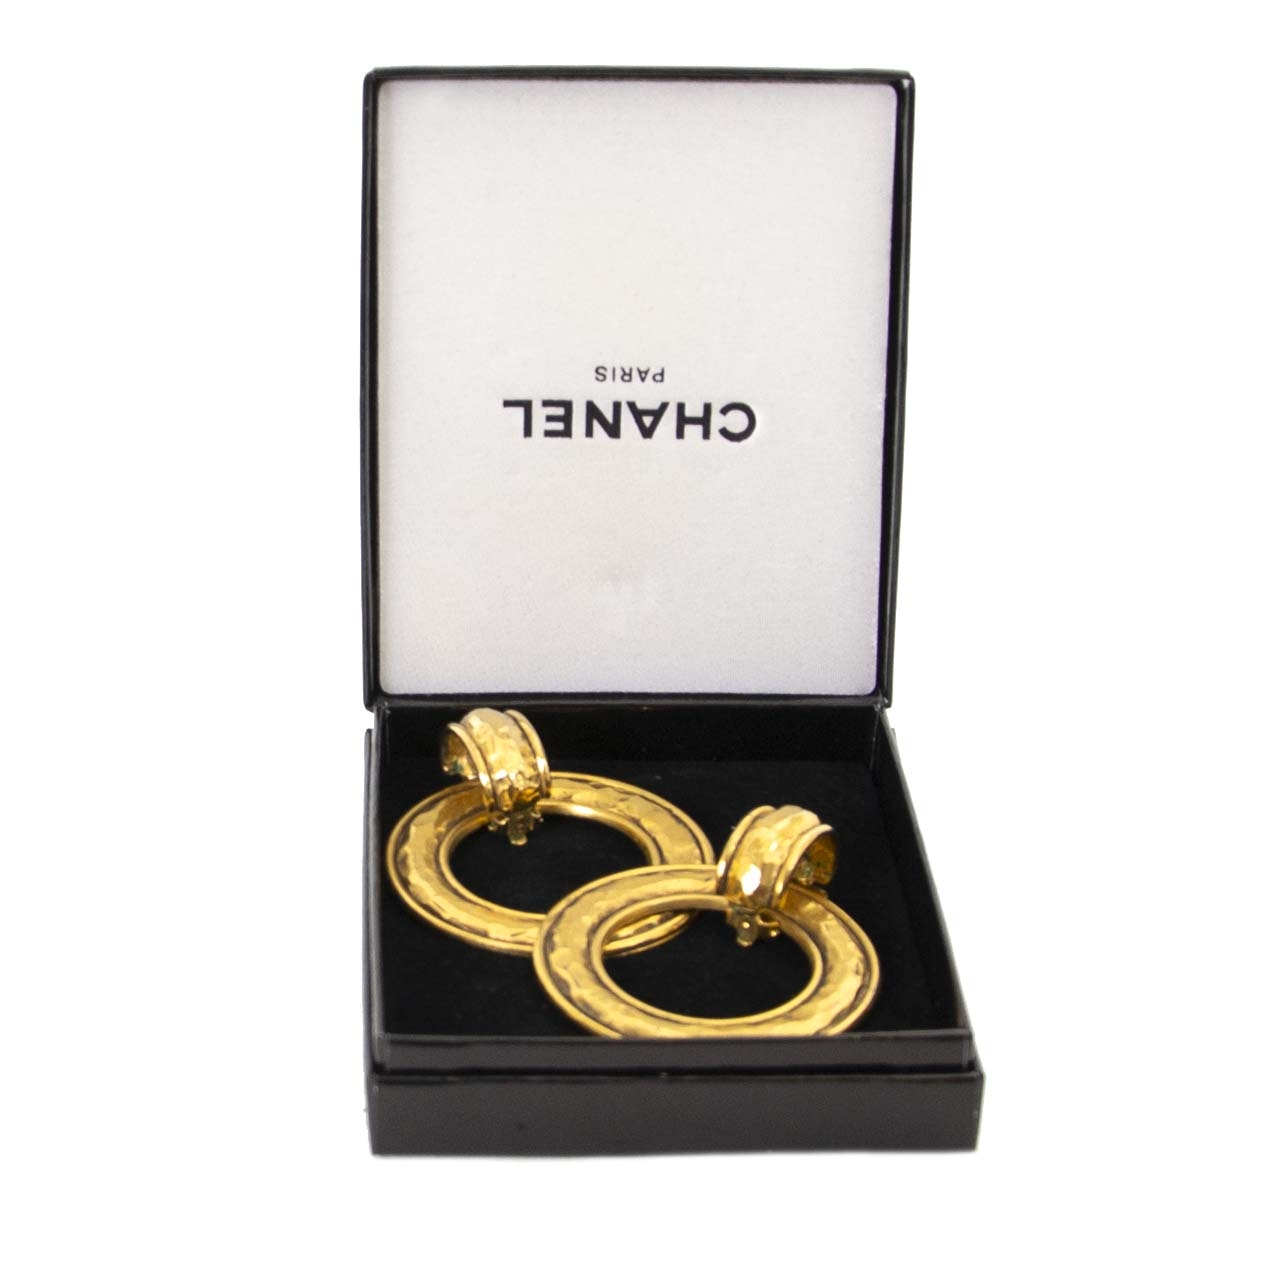 Authentique vintage Chanel Golden Hoop Earrings achète en ligne webshop LabelLOV